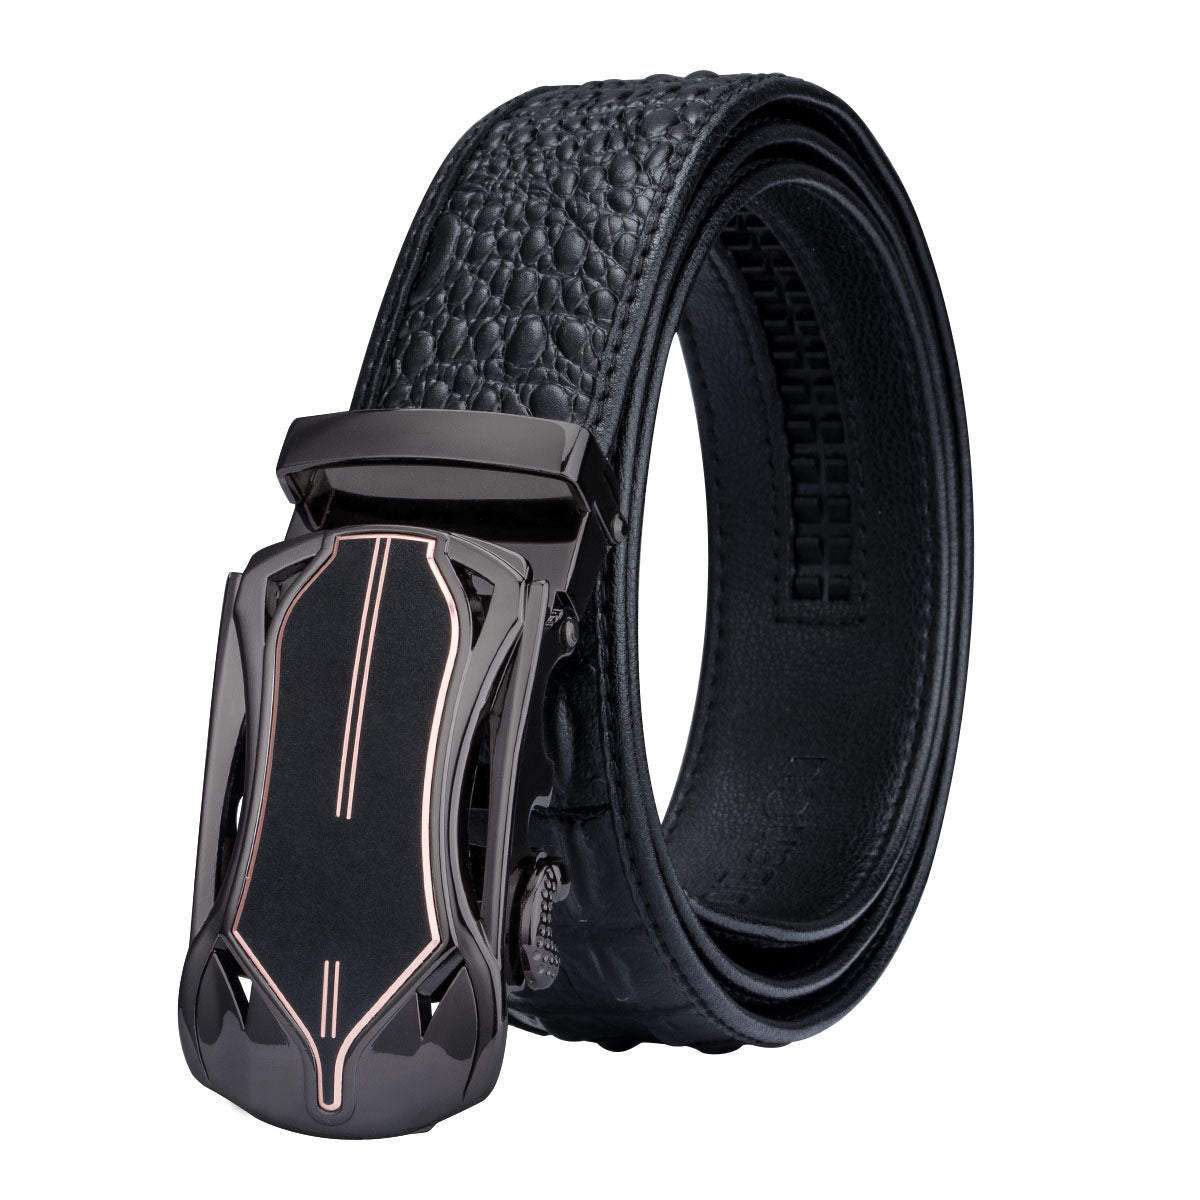 Plaid Set - Black lizard belt with set of 3 buckles